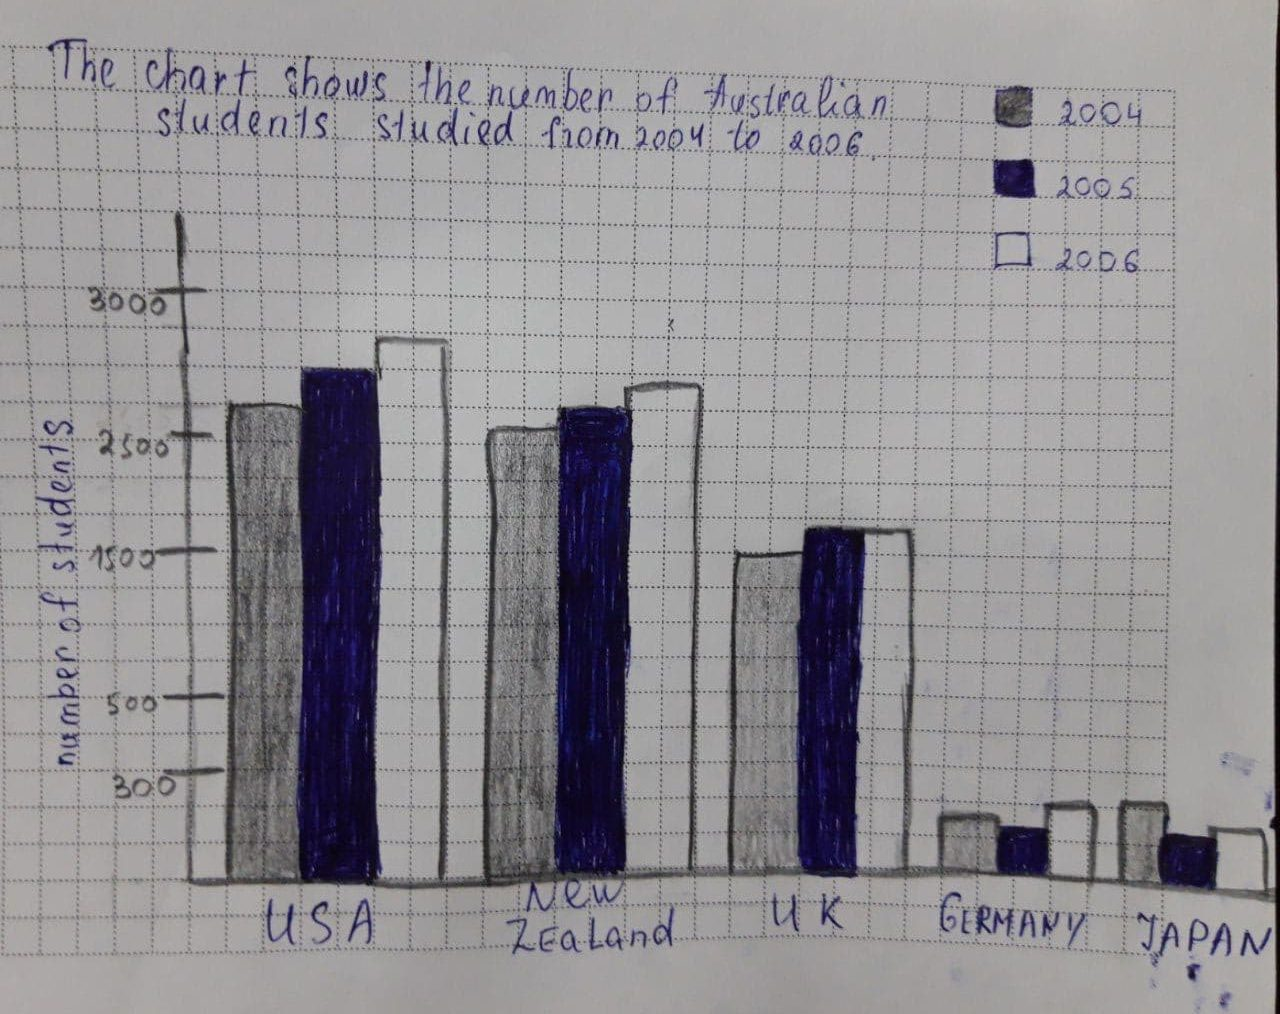 A bar chart shows the number of Australian students studying in five different countries from 2004 to 2006